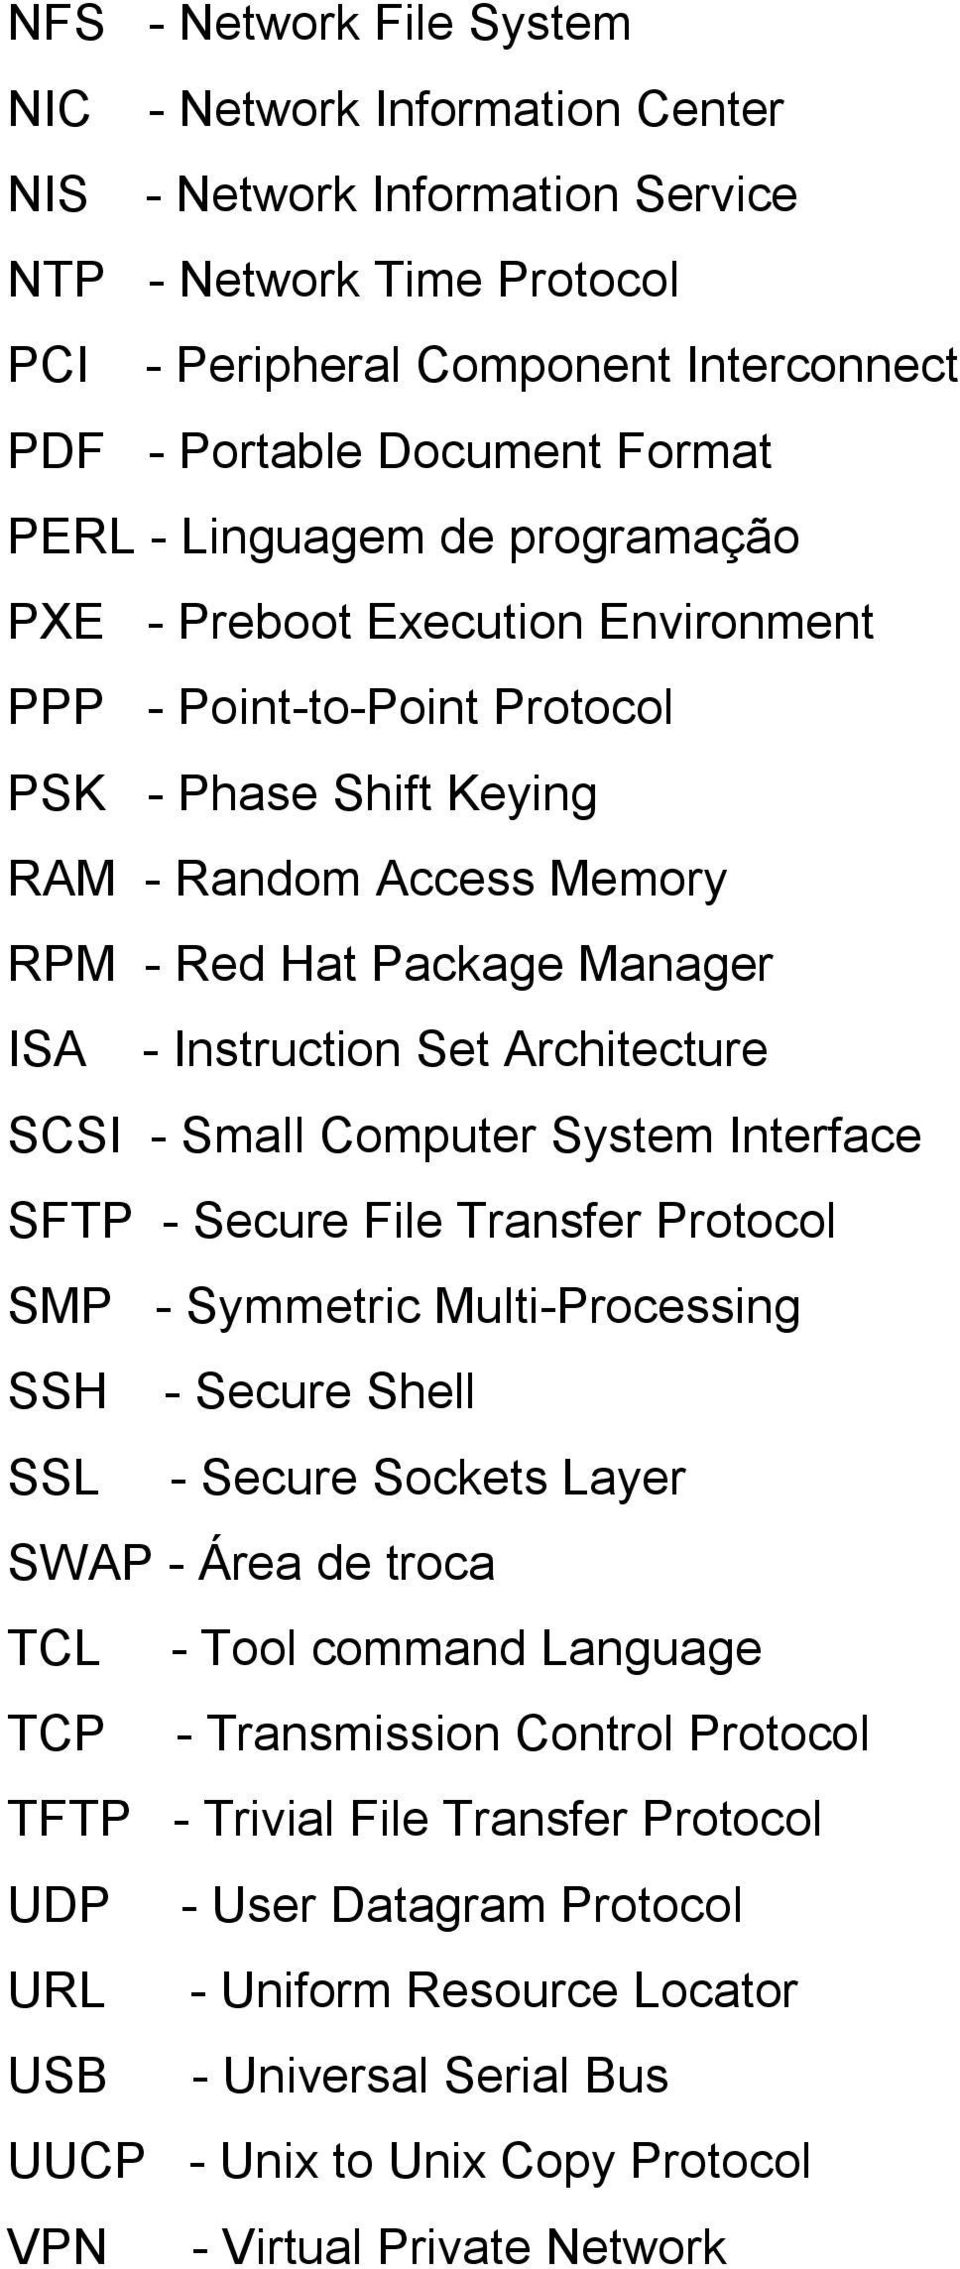 Architecture SCSI - Small Computer System Interface SFTP - Secure File Transfer Protocol SMP - Symmetric Multi-Processing SSH - Secure Shell SSL - Secure Sockets Layer SWAP - Área de troca TCL - Tool